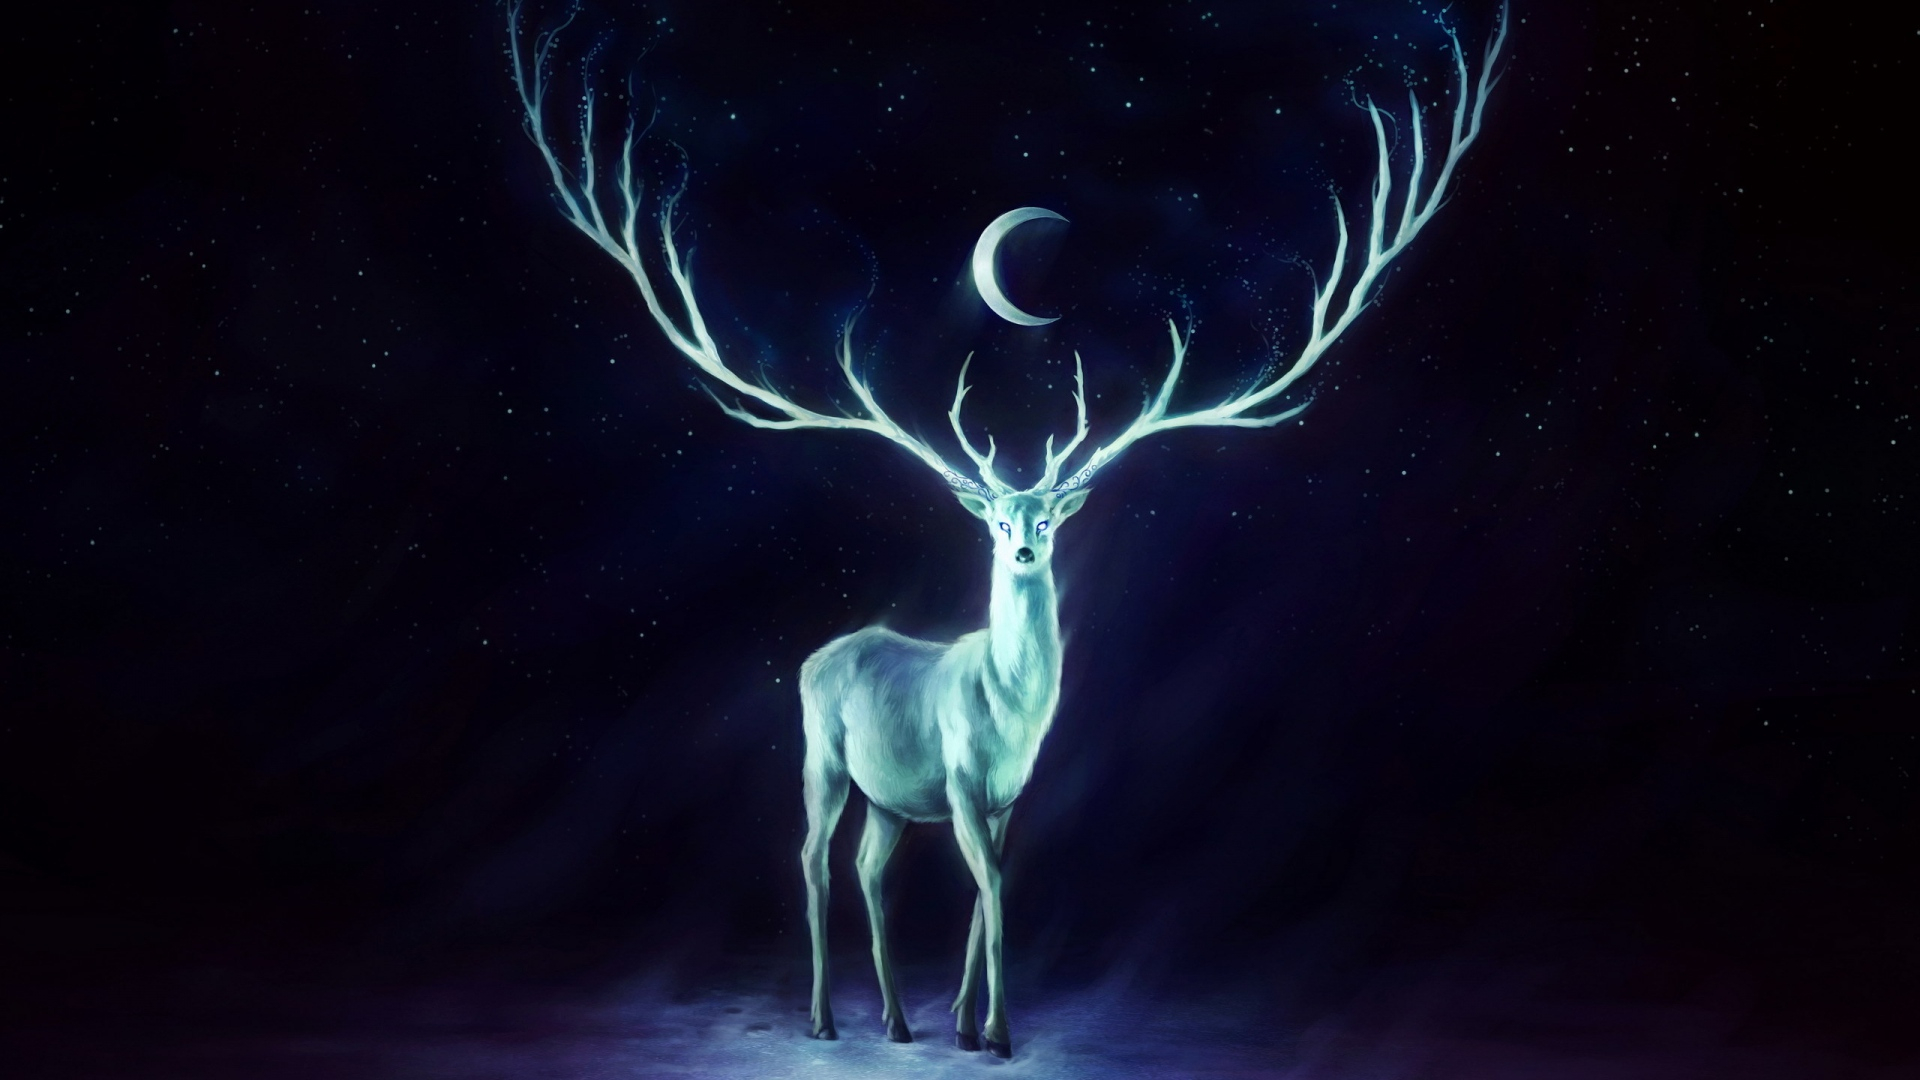 Deer HD Wallpapers 2.